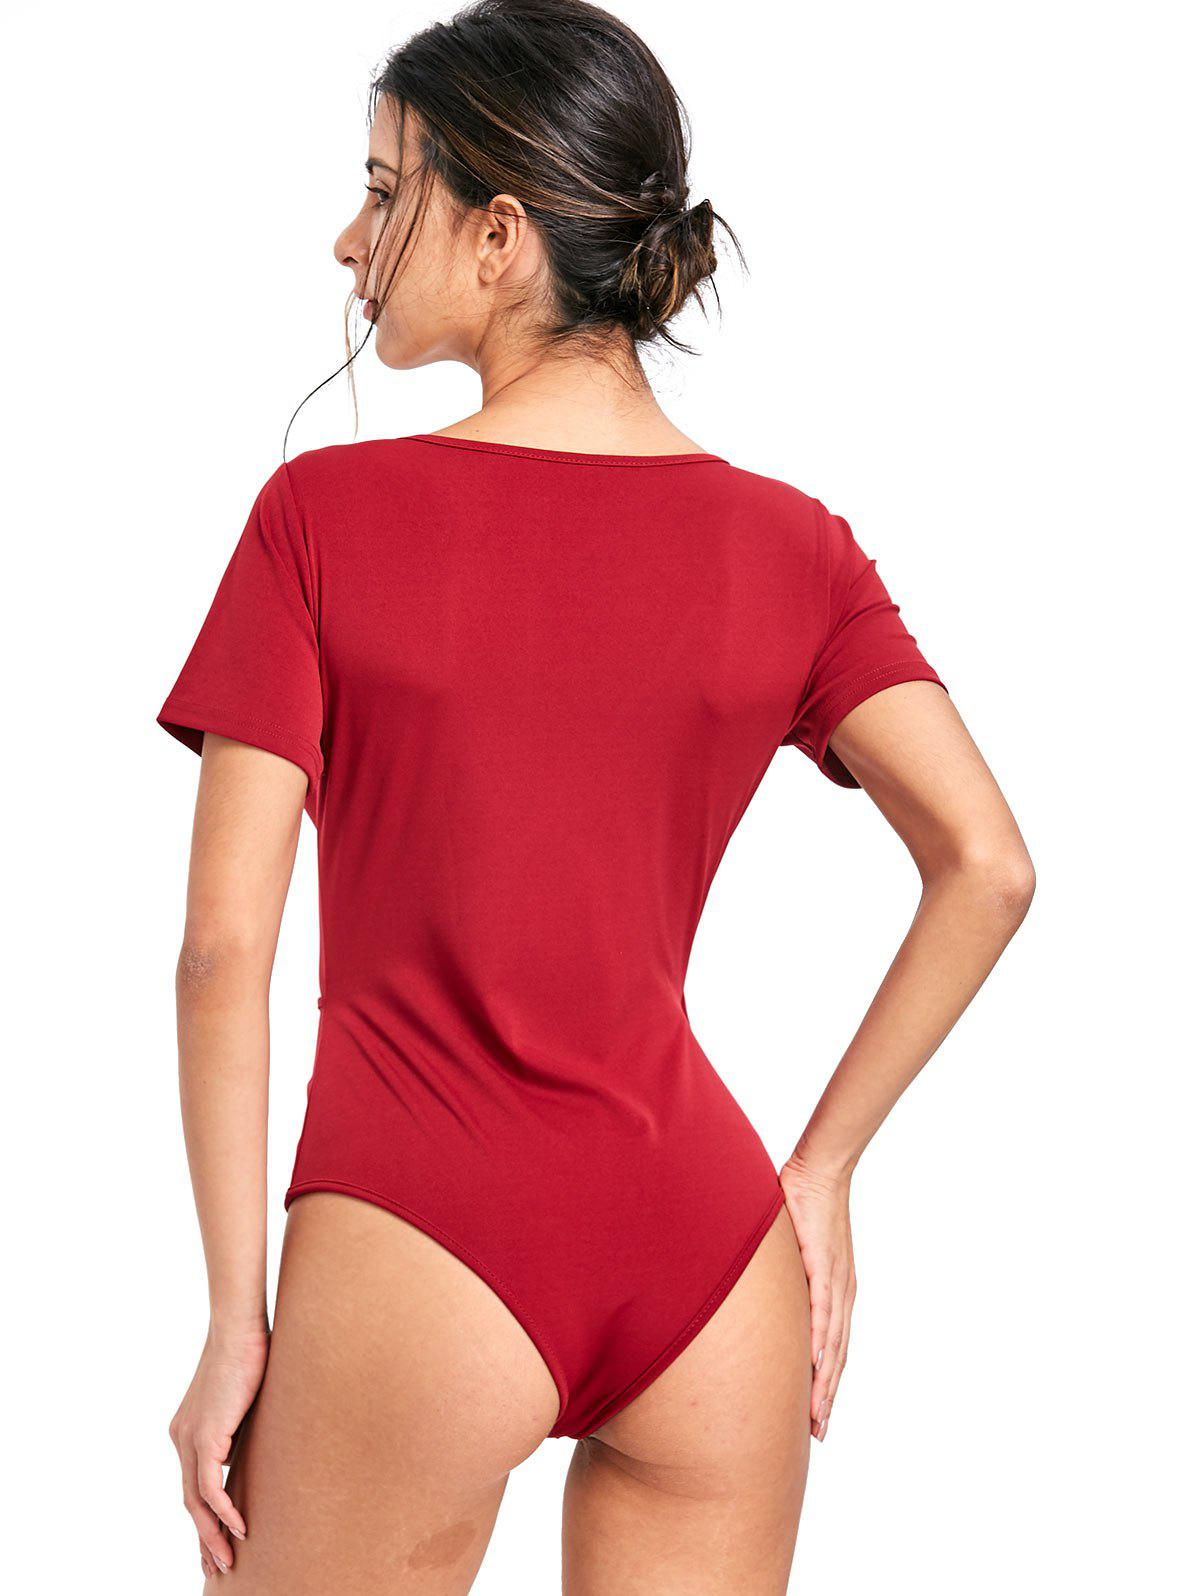 Skinny Surplice Plunging Bodysuit - WINE RED XL